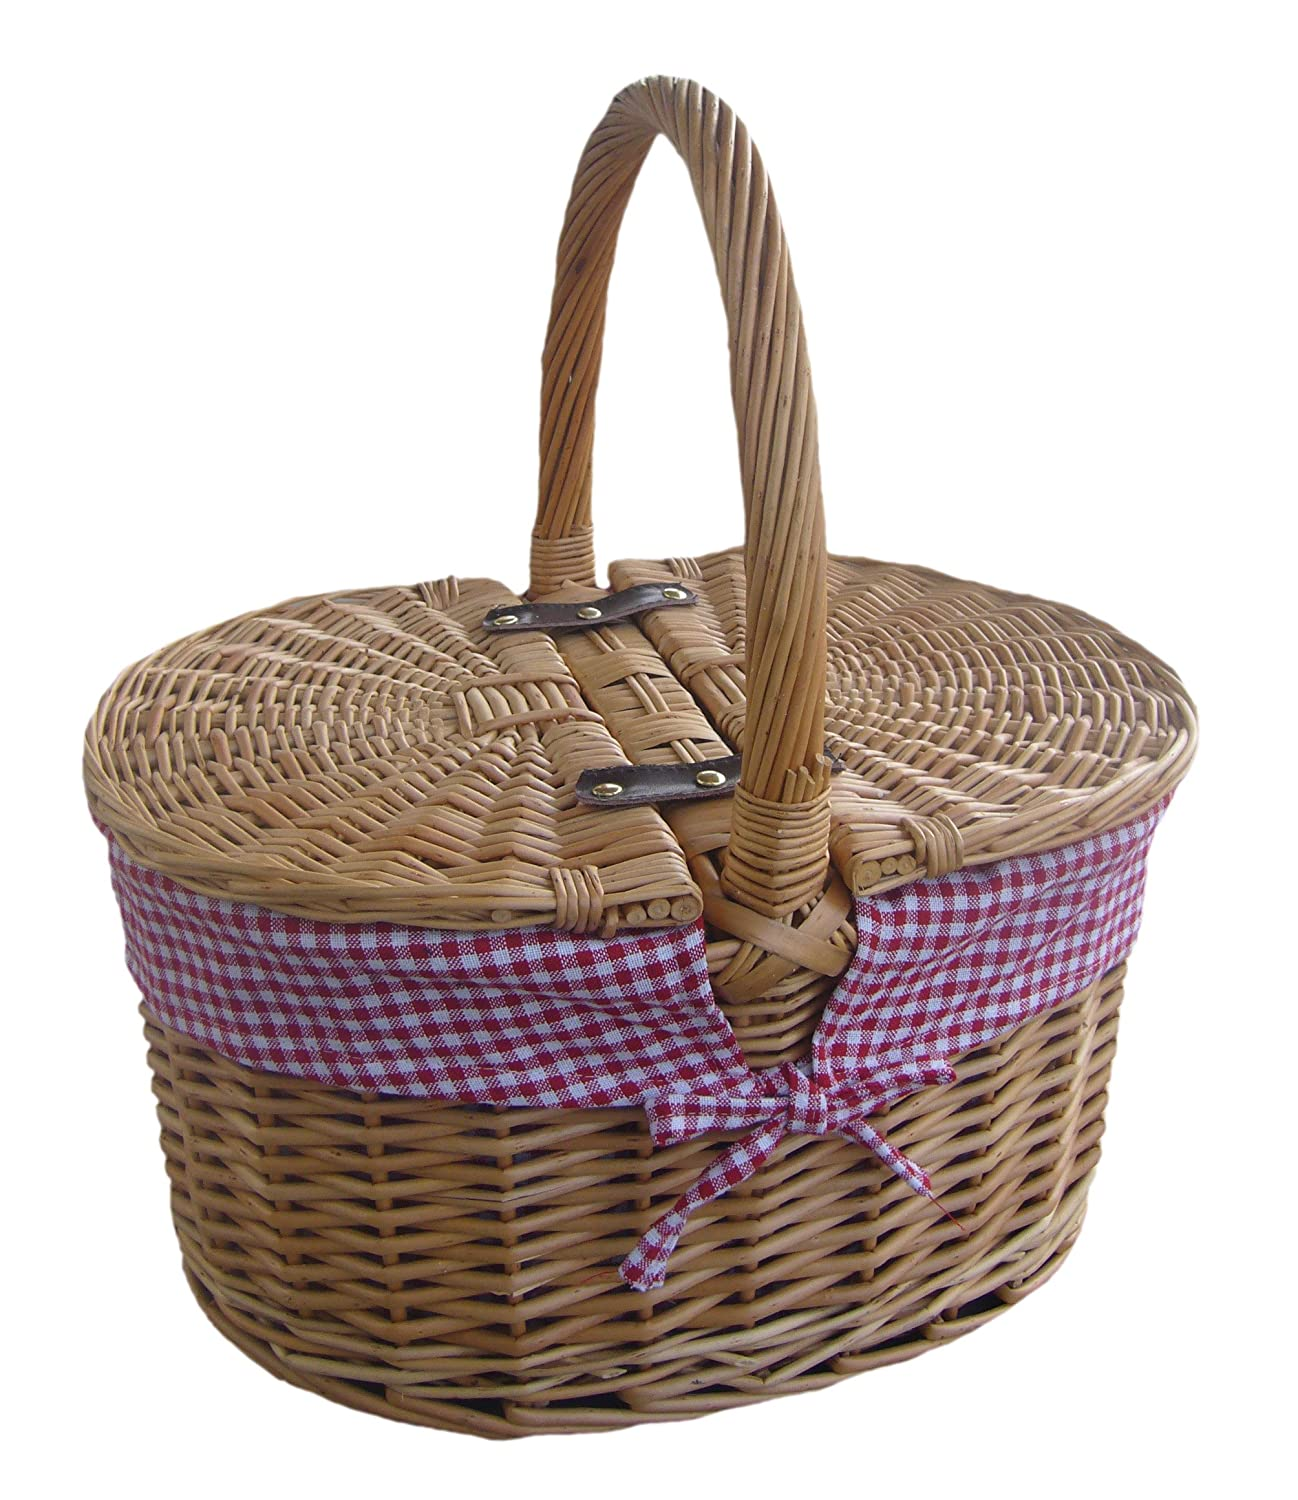 Buff Willow Wicker Oval Lidded Red Gingham Lined Hamper Picnic Basket WD-40